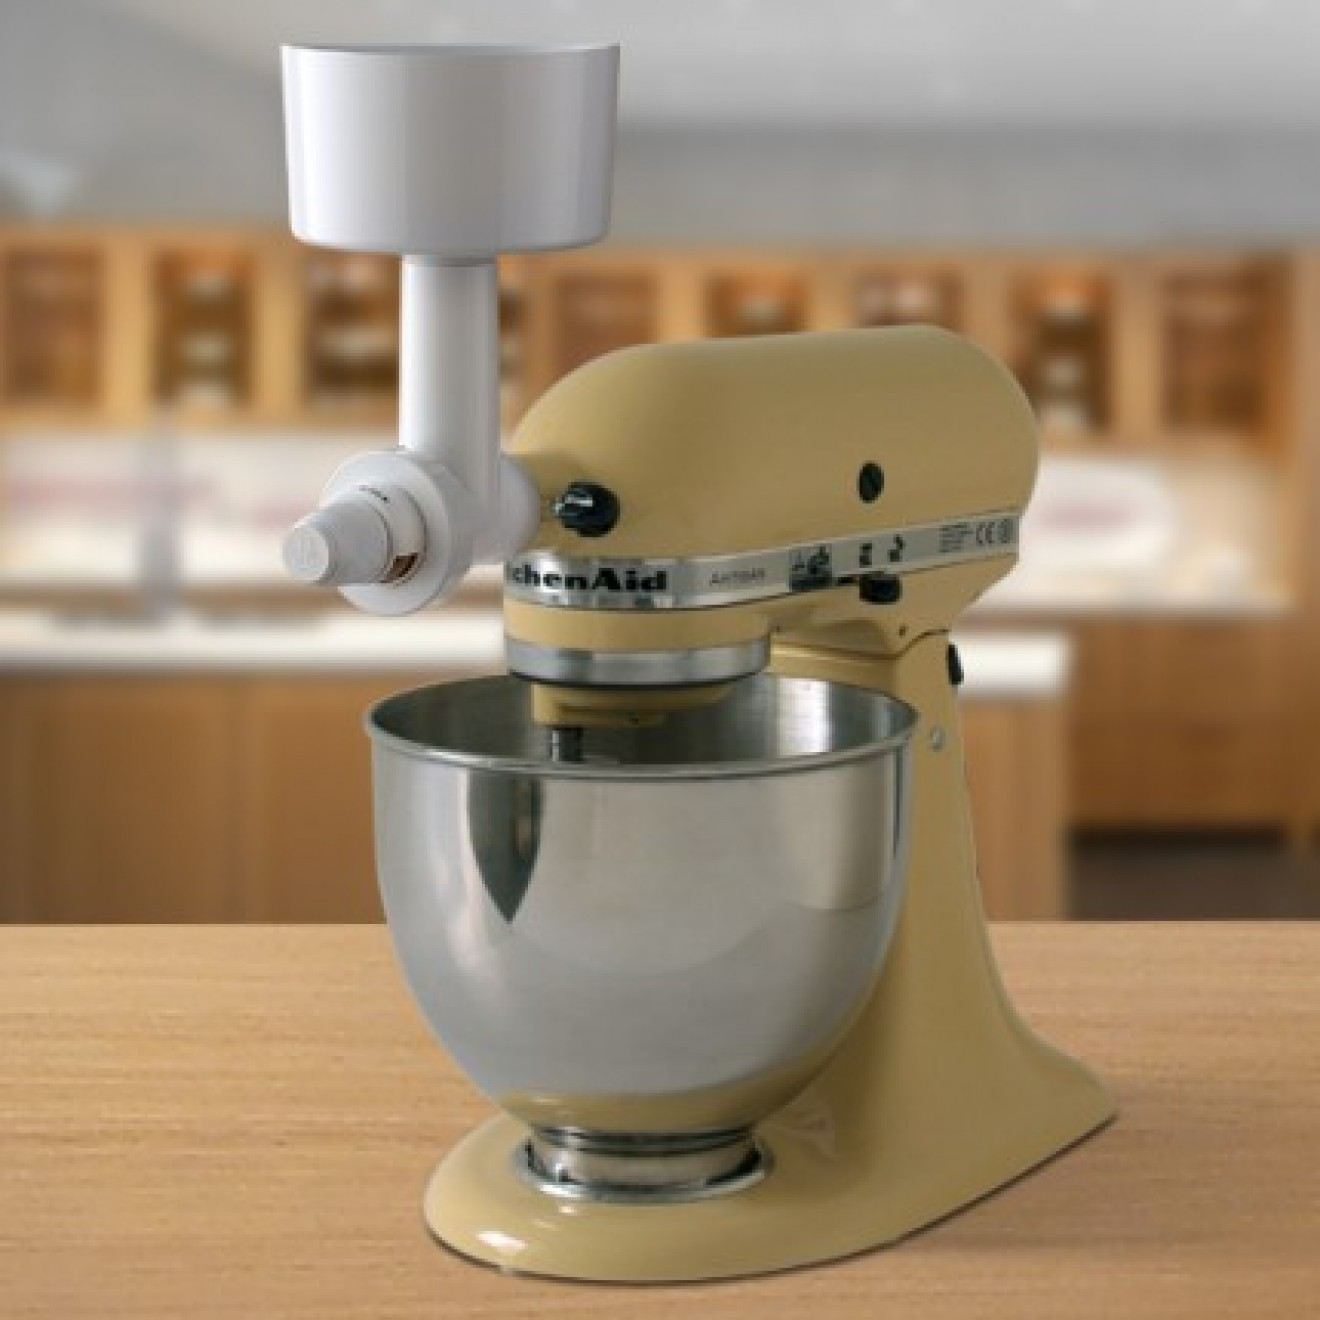 Steel Cone Grinder Attachment For Kitchenaid Stand Mixers